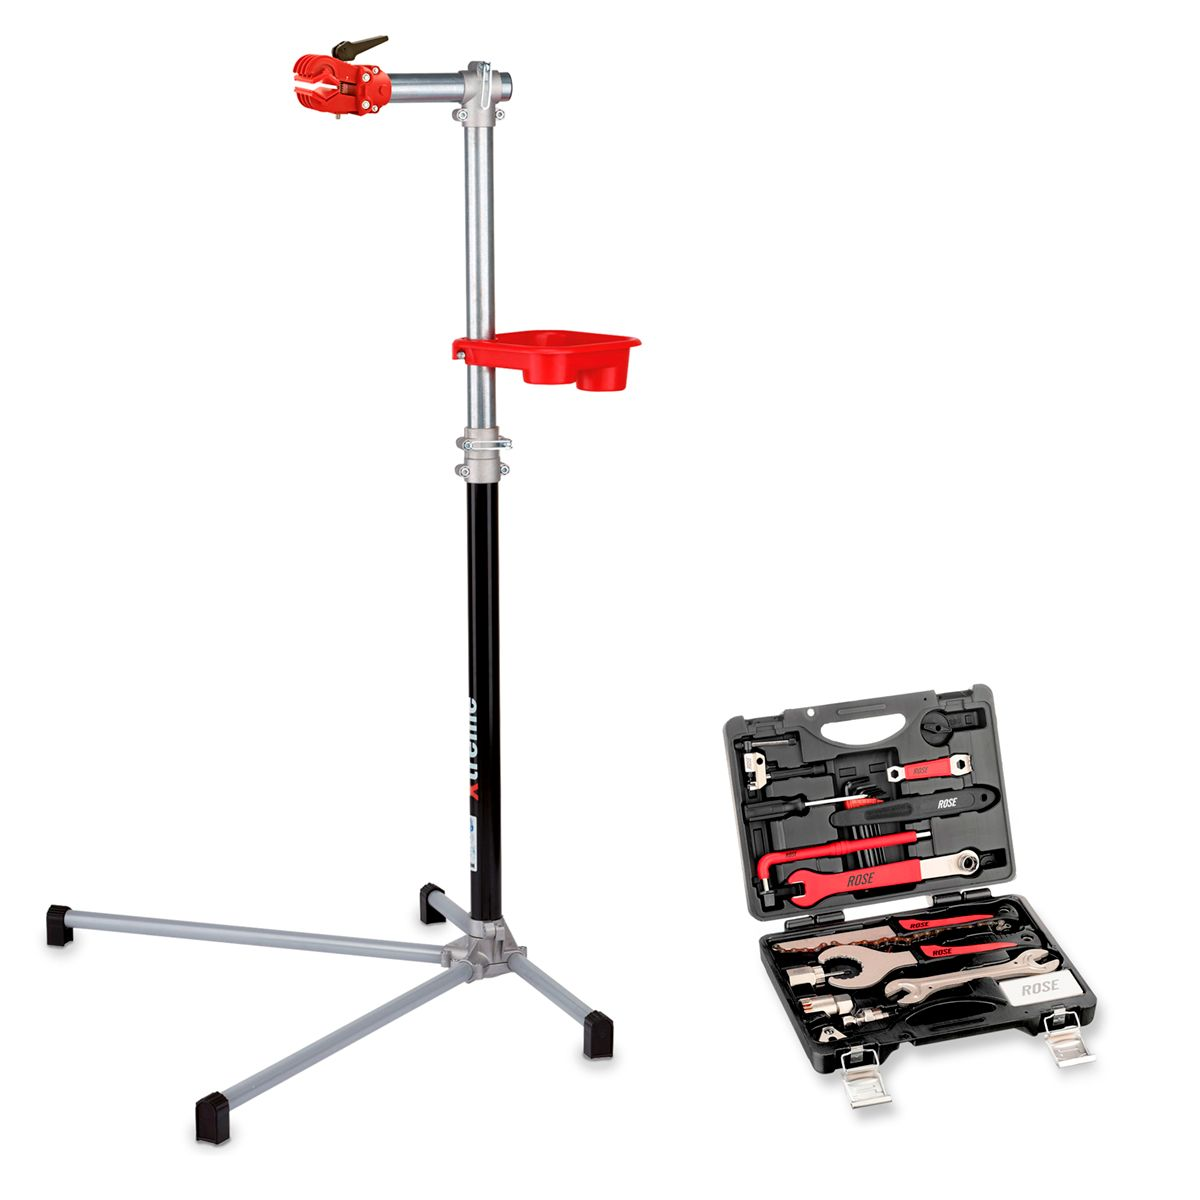 S 1300 workstand set incl. All2gether tool box